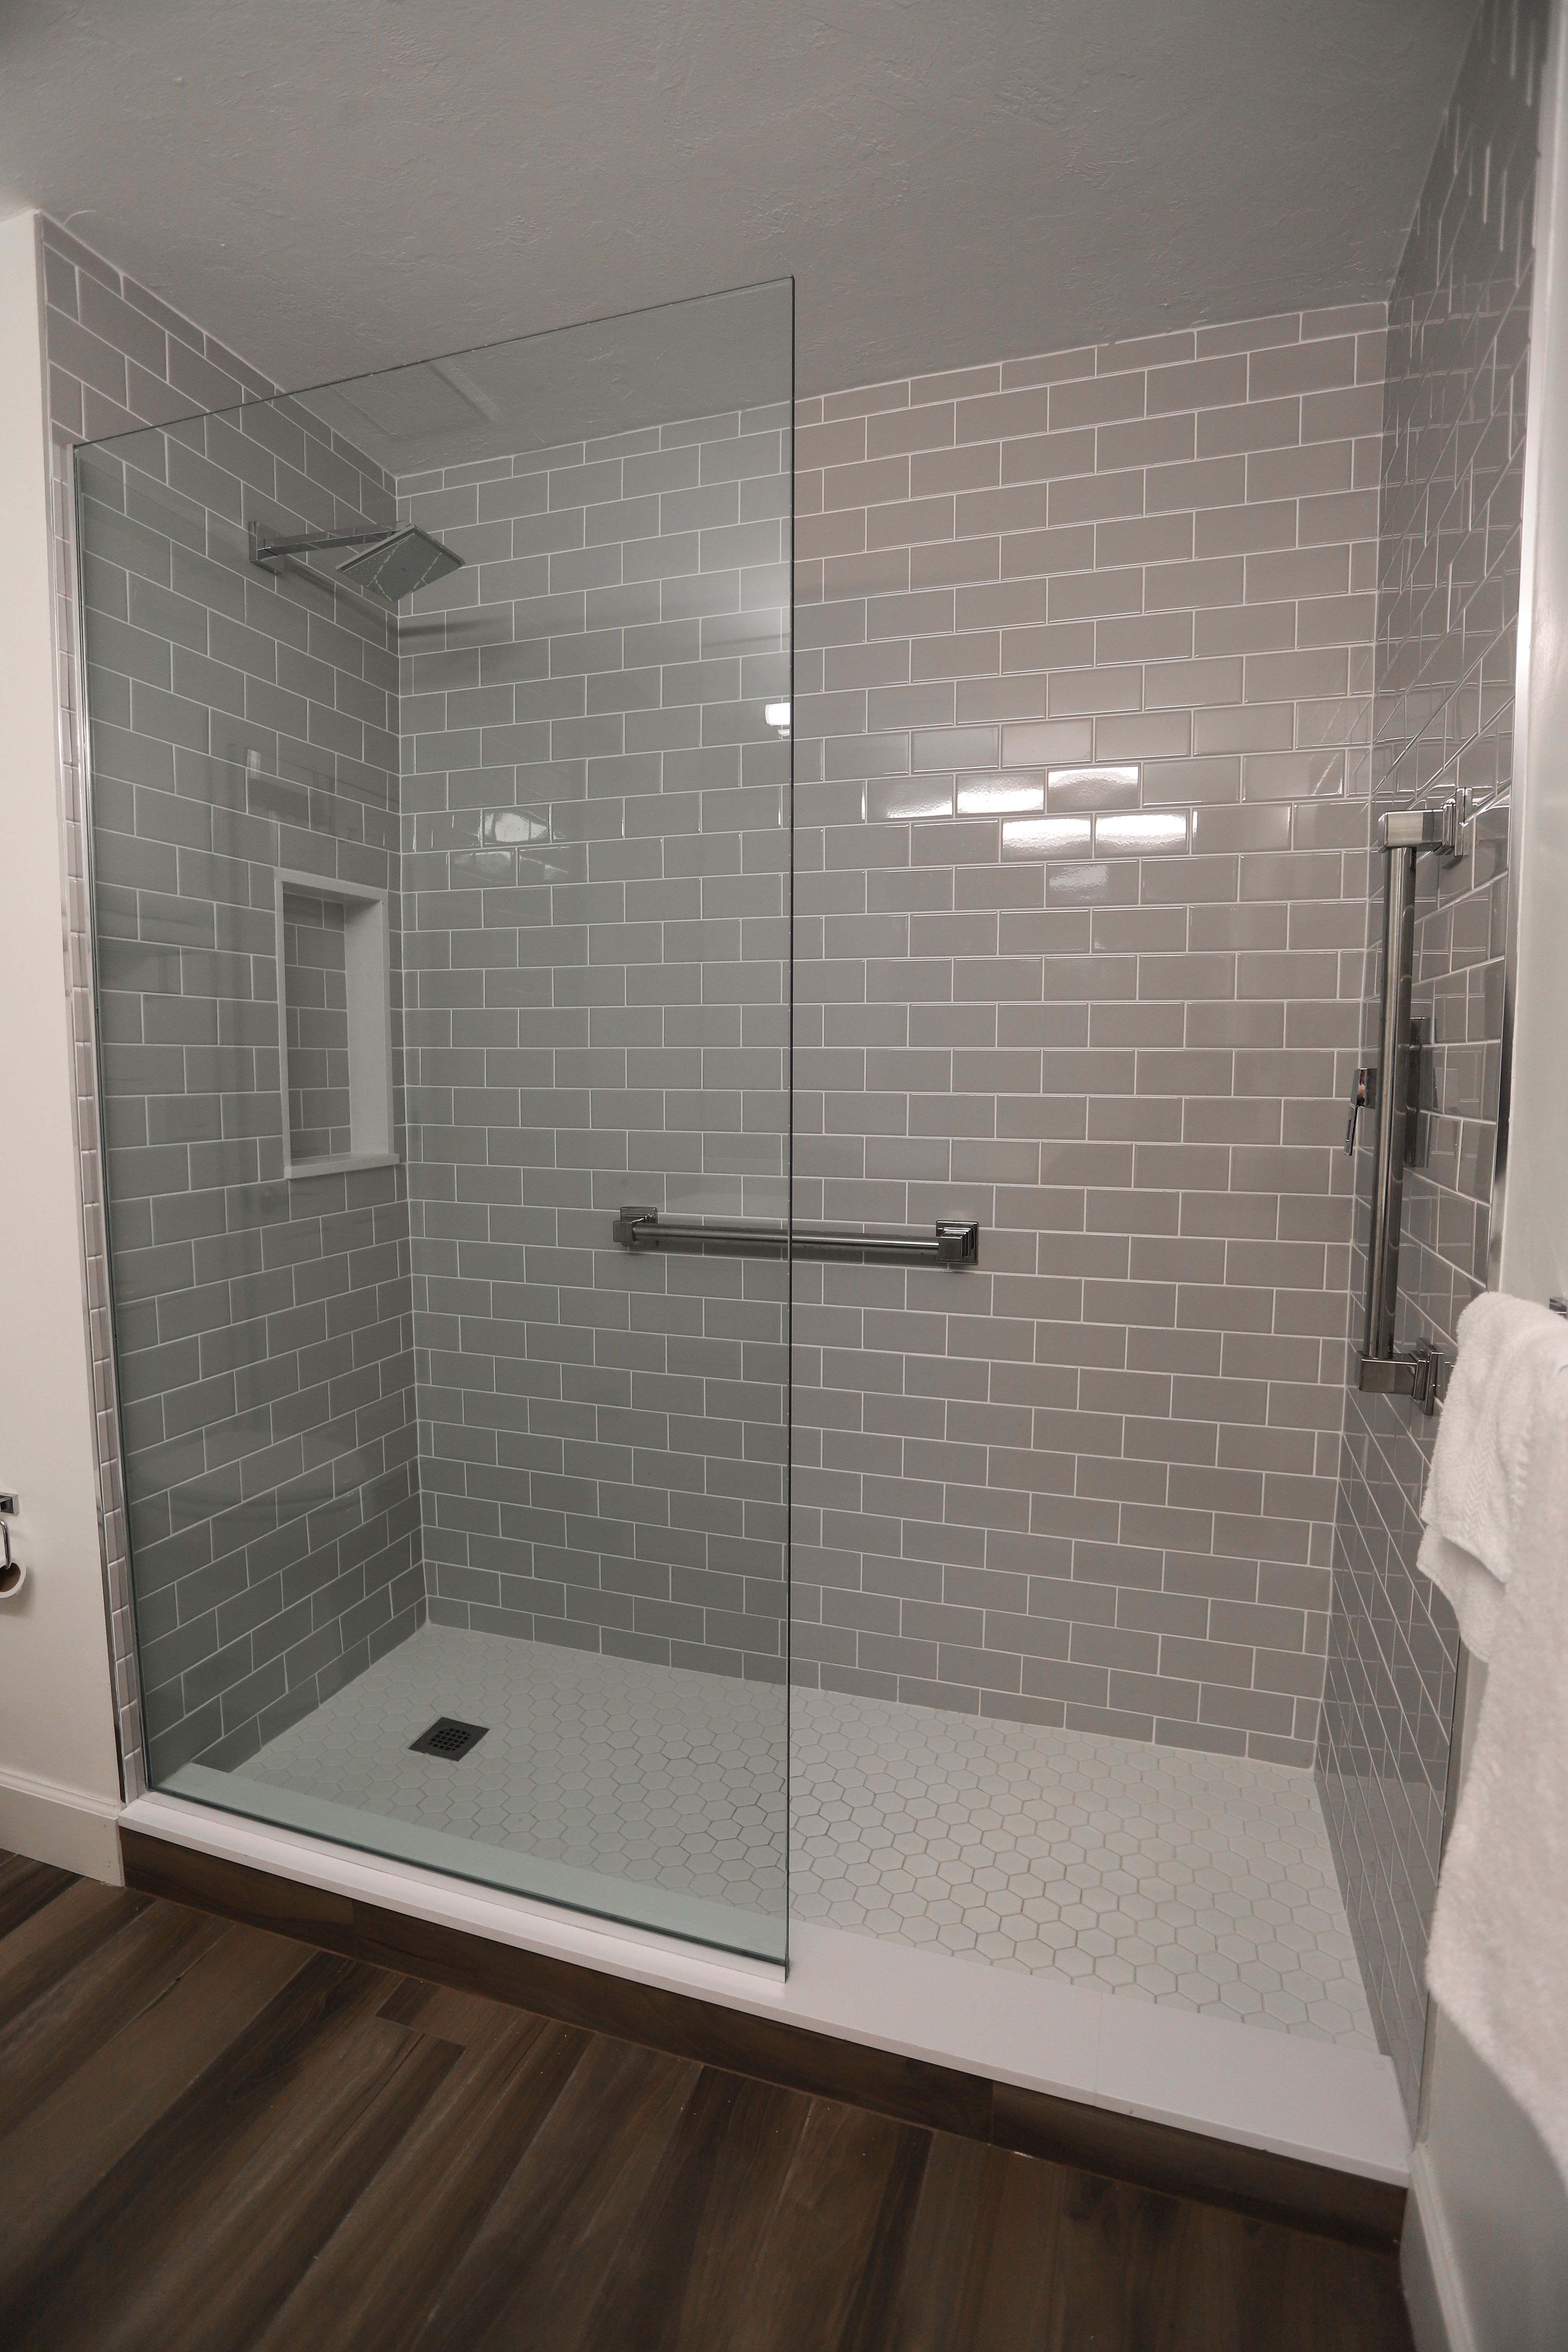 We Re Absolutely Loving The Gray Tile Bathroom Remodel Shower Small Bathroom Remodel Remodel [ jpg ]